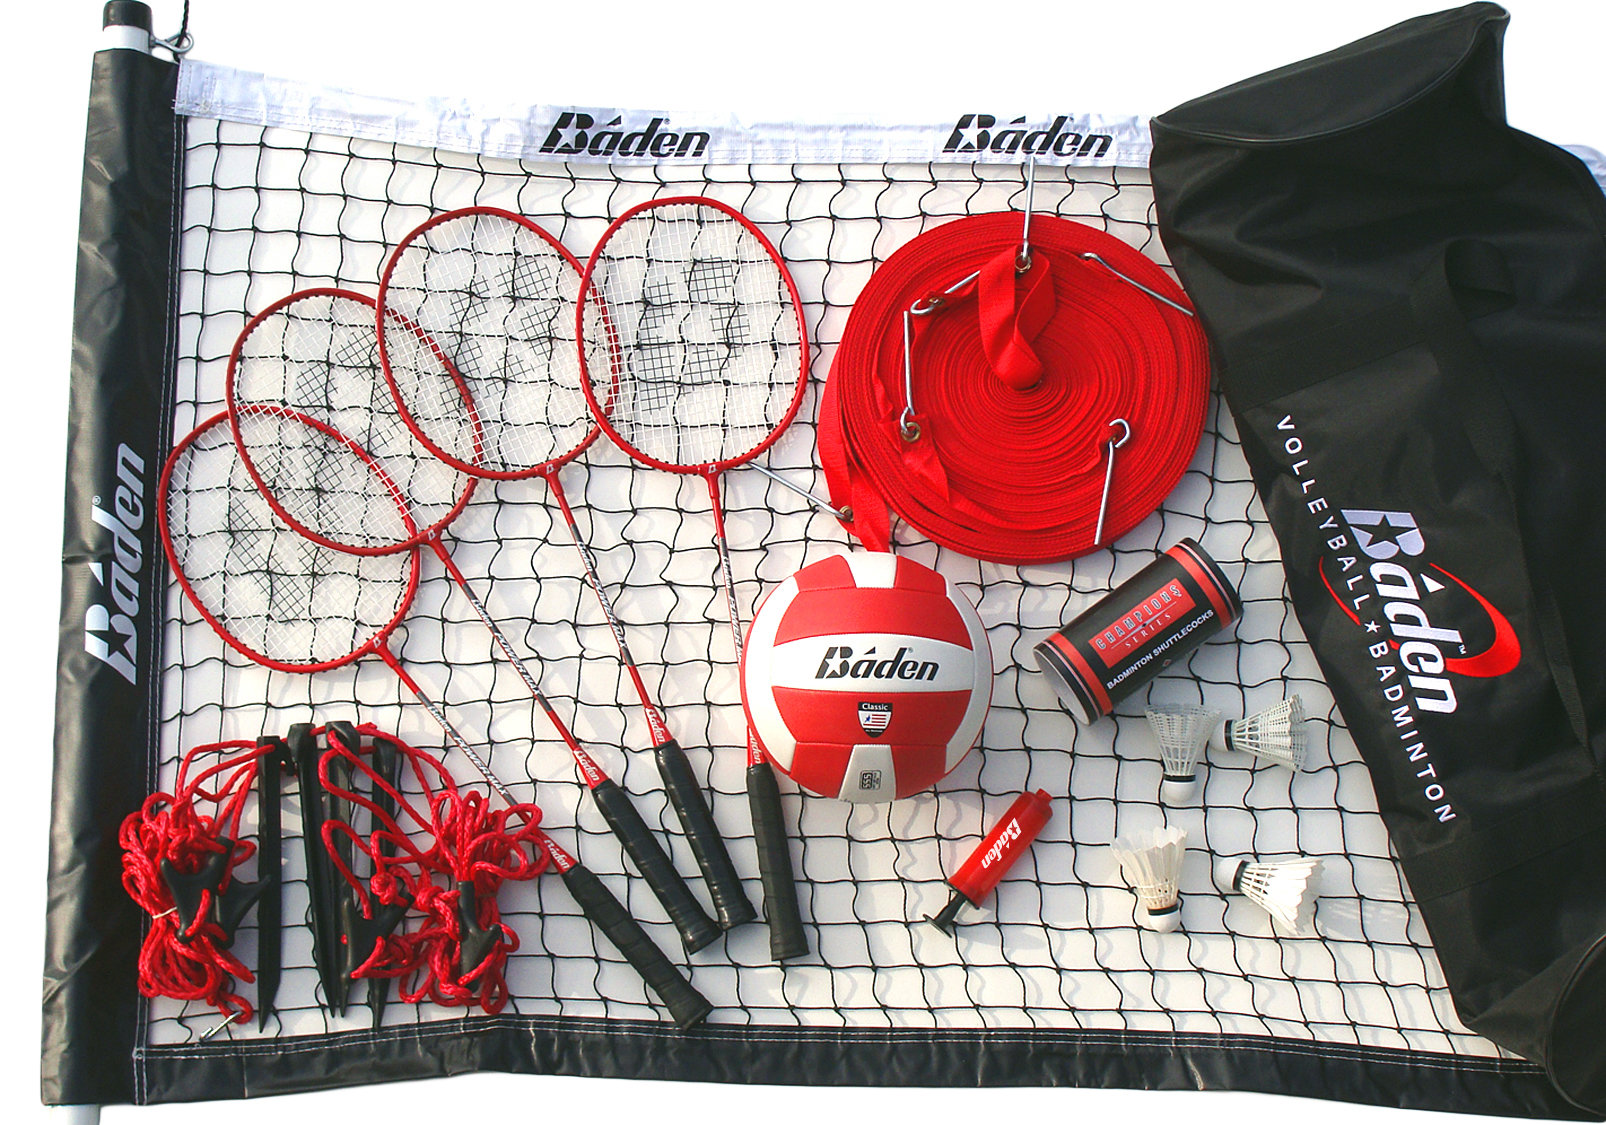 Champions Volleyball/Badminton Set G202